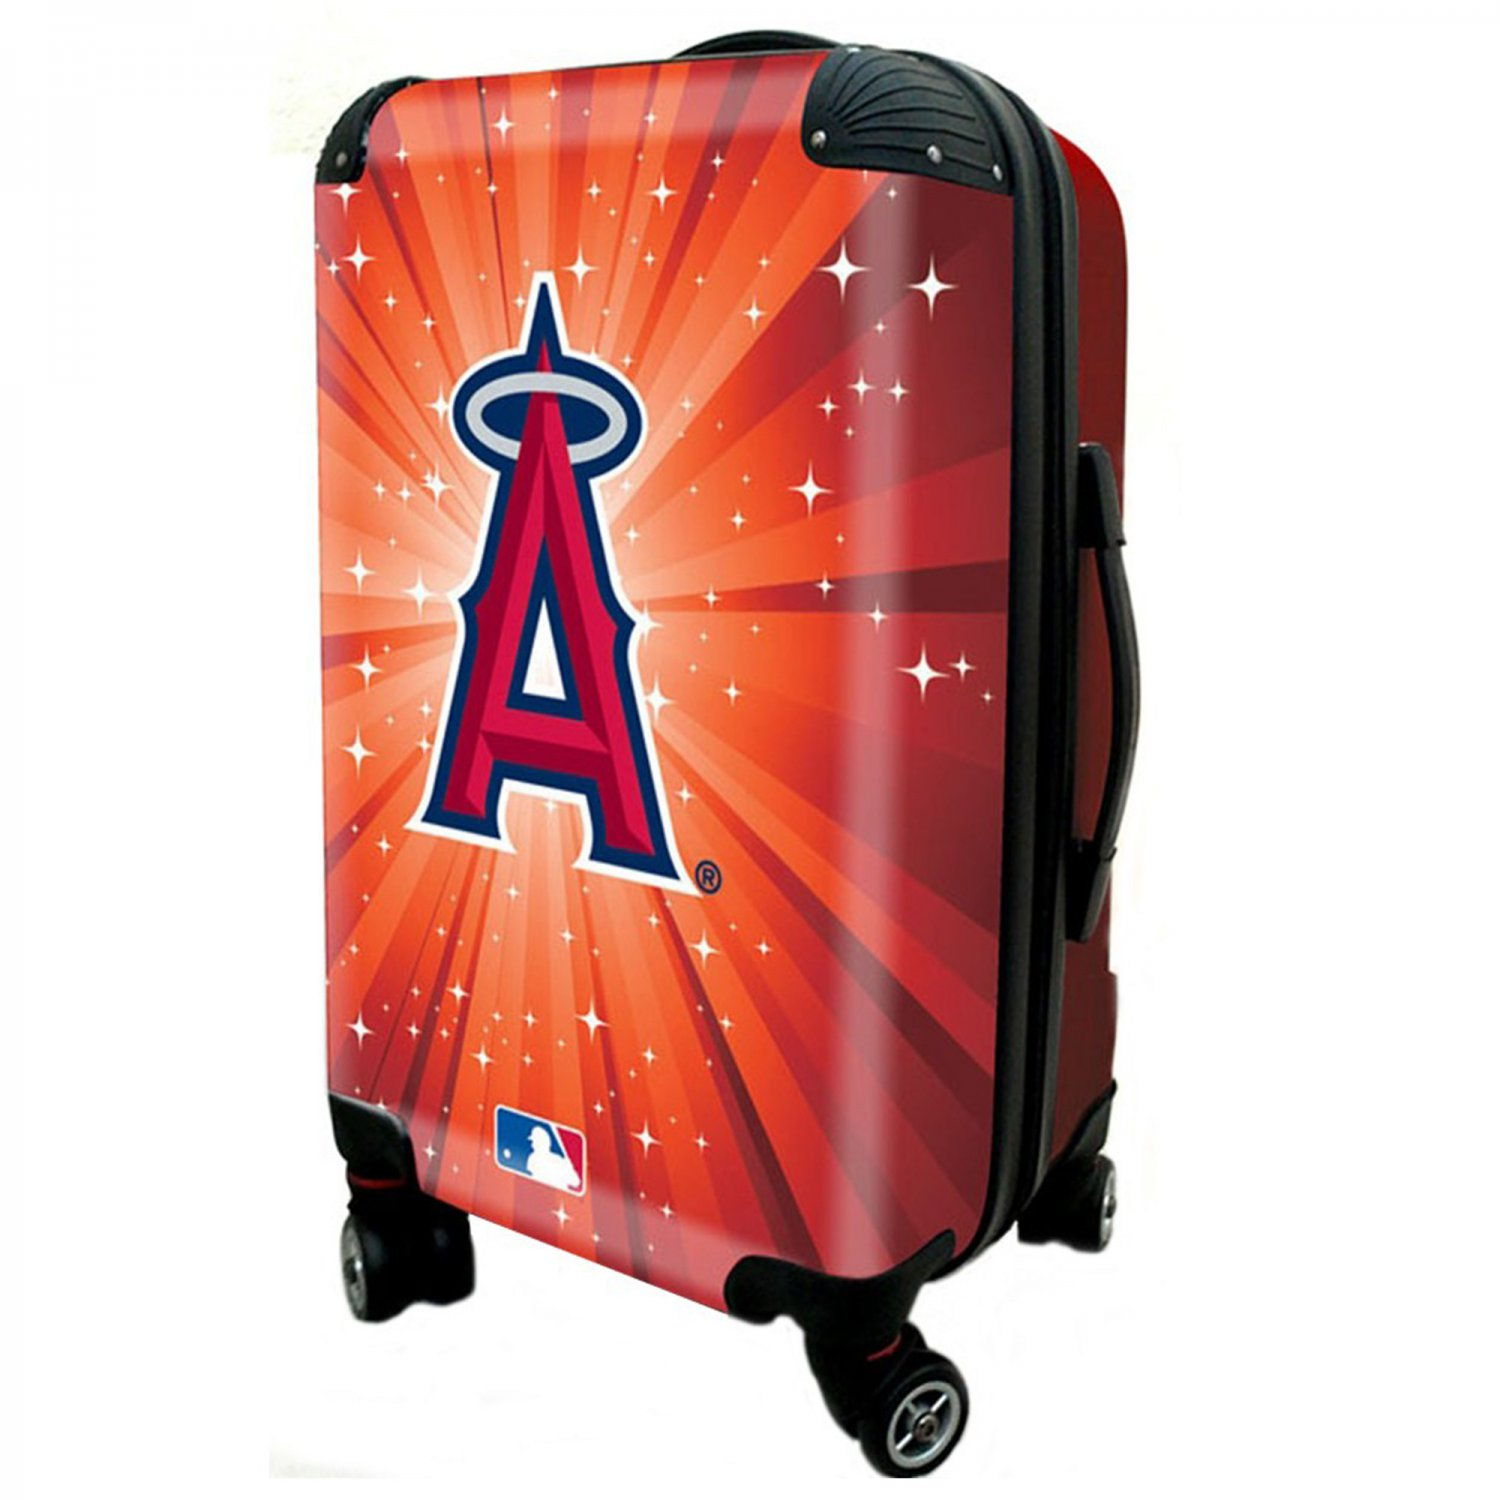 """Los Angeles Angels, 21"""" Clear Poly Carry-On Luggage by Kaybull #LAA13"""